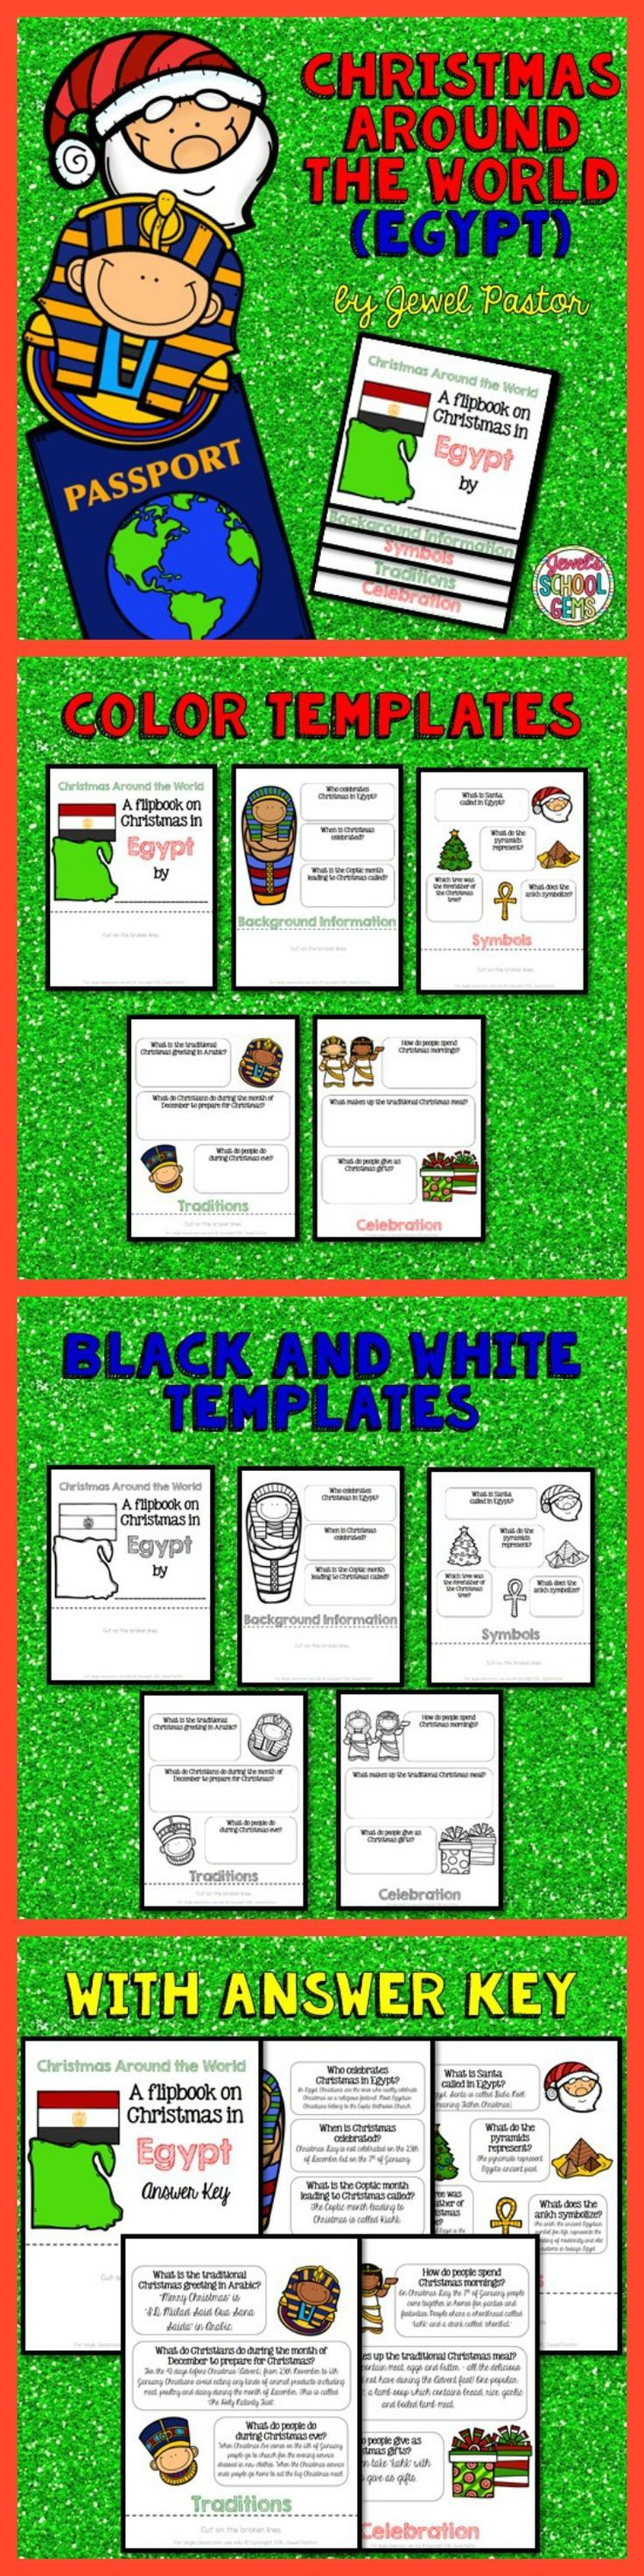 """Christmas Around the World: Christmas Around the World (Egypt)  CHRISTMAS AROUND THE WORLD (EGYPT)  Engage your students with this Christmas Around the World Activity: """"A Research Flipbook on Christmas in Egypt"""".  This resource contains: *5 pages of color templates *5 pages of black and white templates *5 pages with answers to the questions (Answer Key)  Children will learn about Egypt's Christmas traditions and celebrations in a fun and interactive way with this flipbook research project!"""